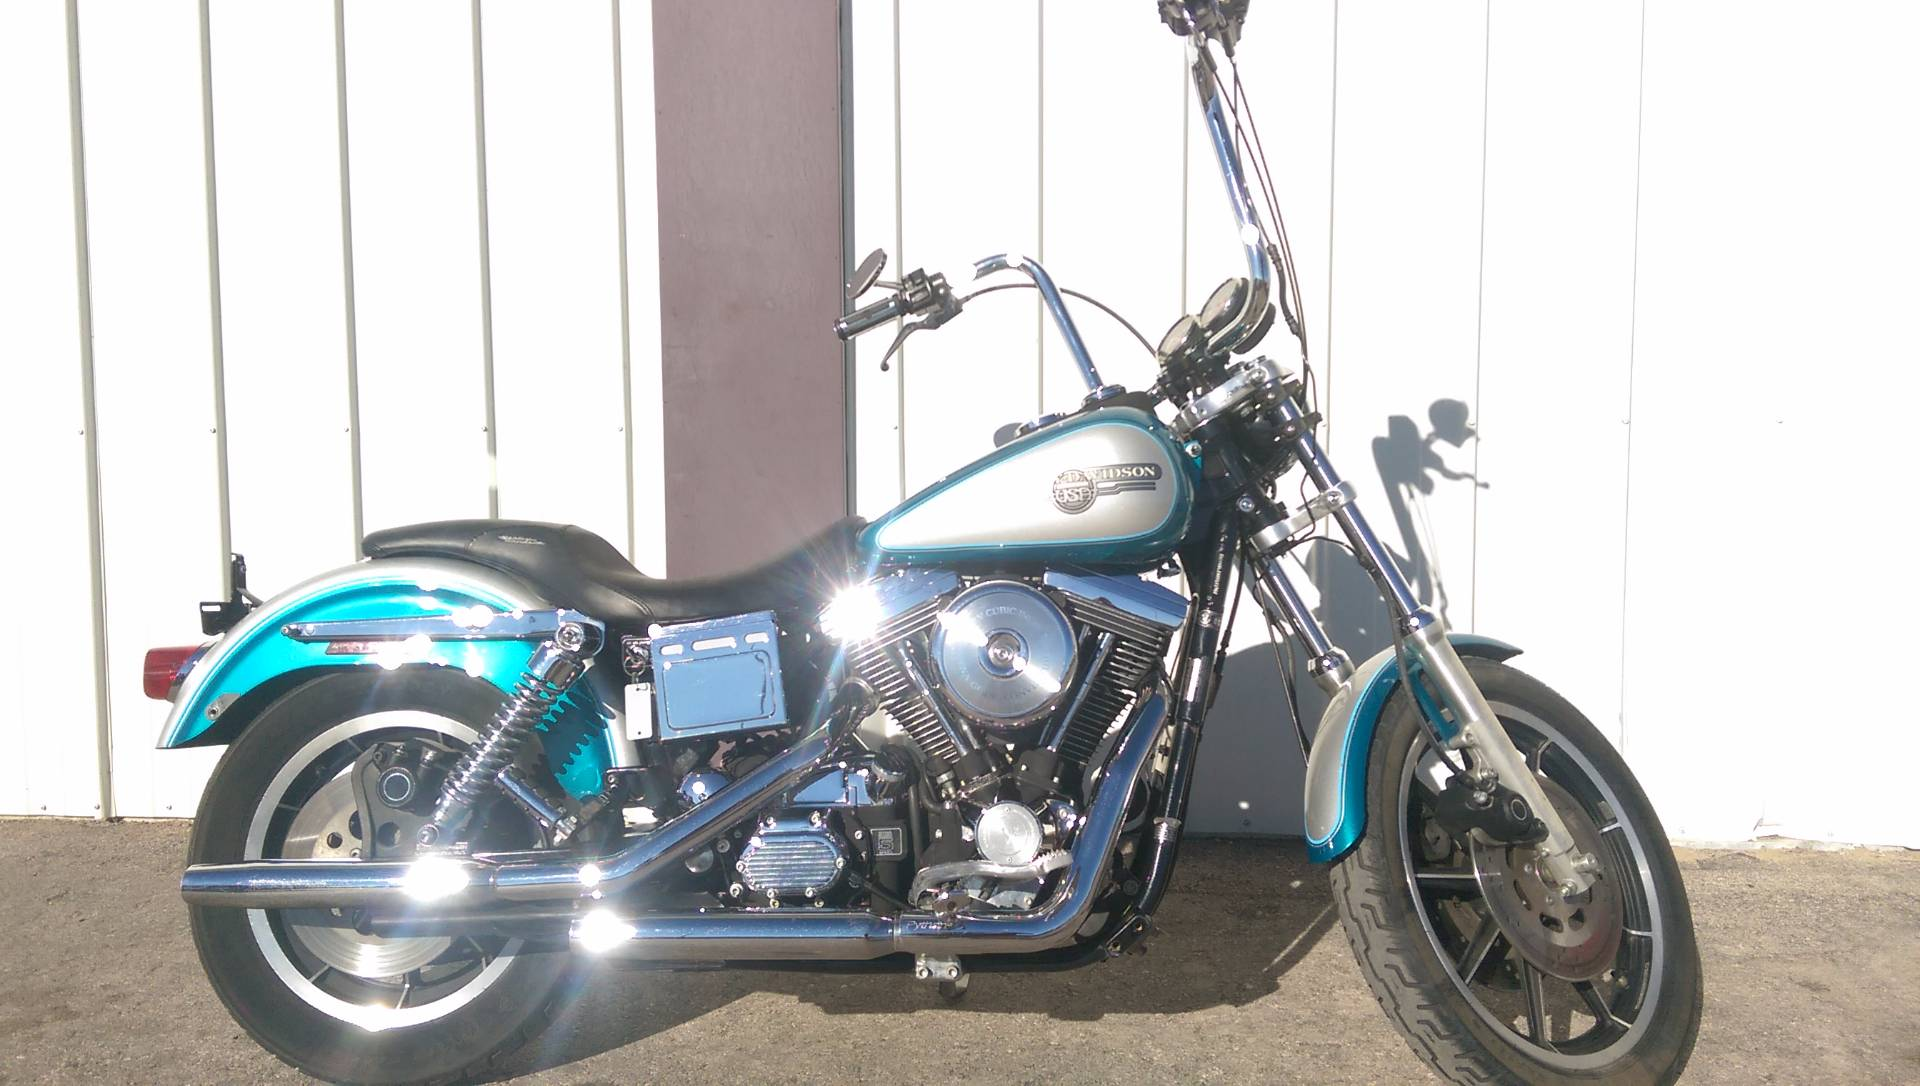 1994 Harley-Davidson FXDS Dyna Convertible 1